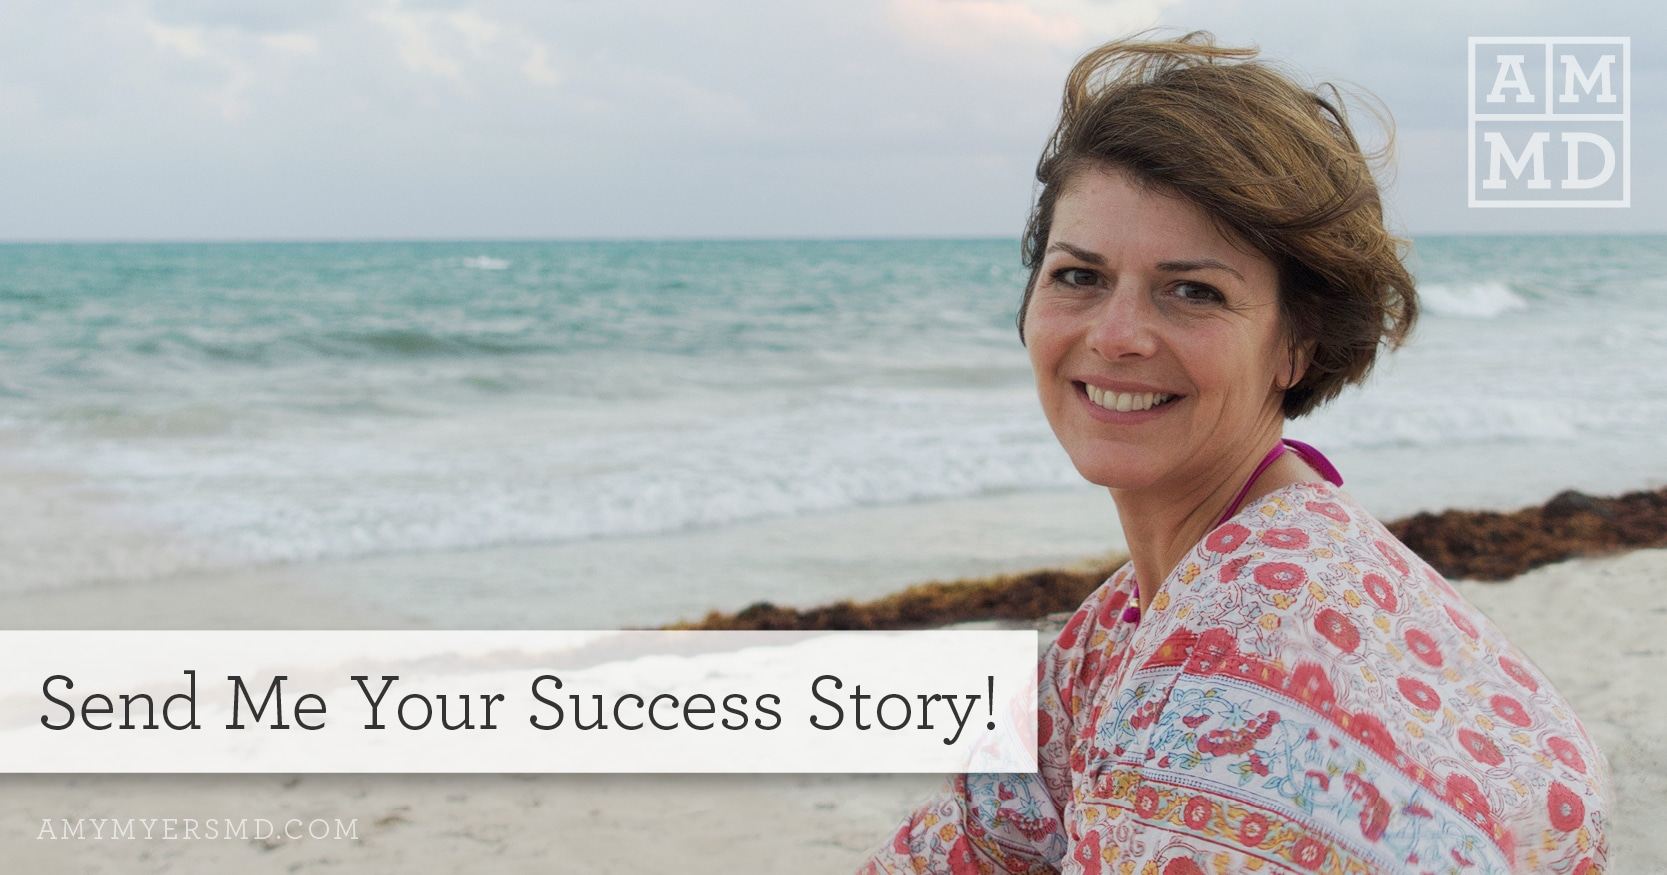 Send me your success story! - Dr. Amy Myers at the Beach - Featured Image - Amy Myers MD